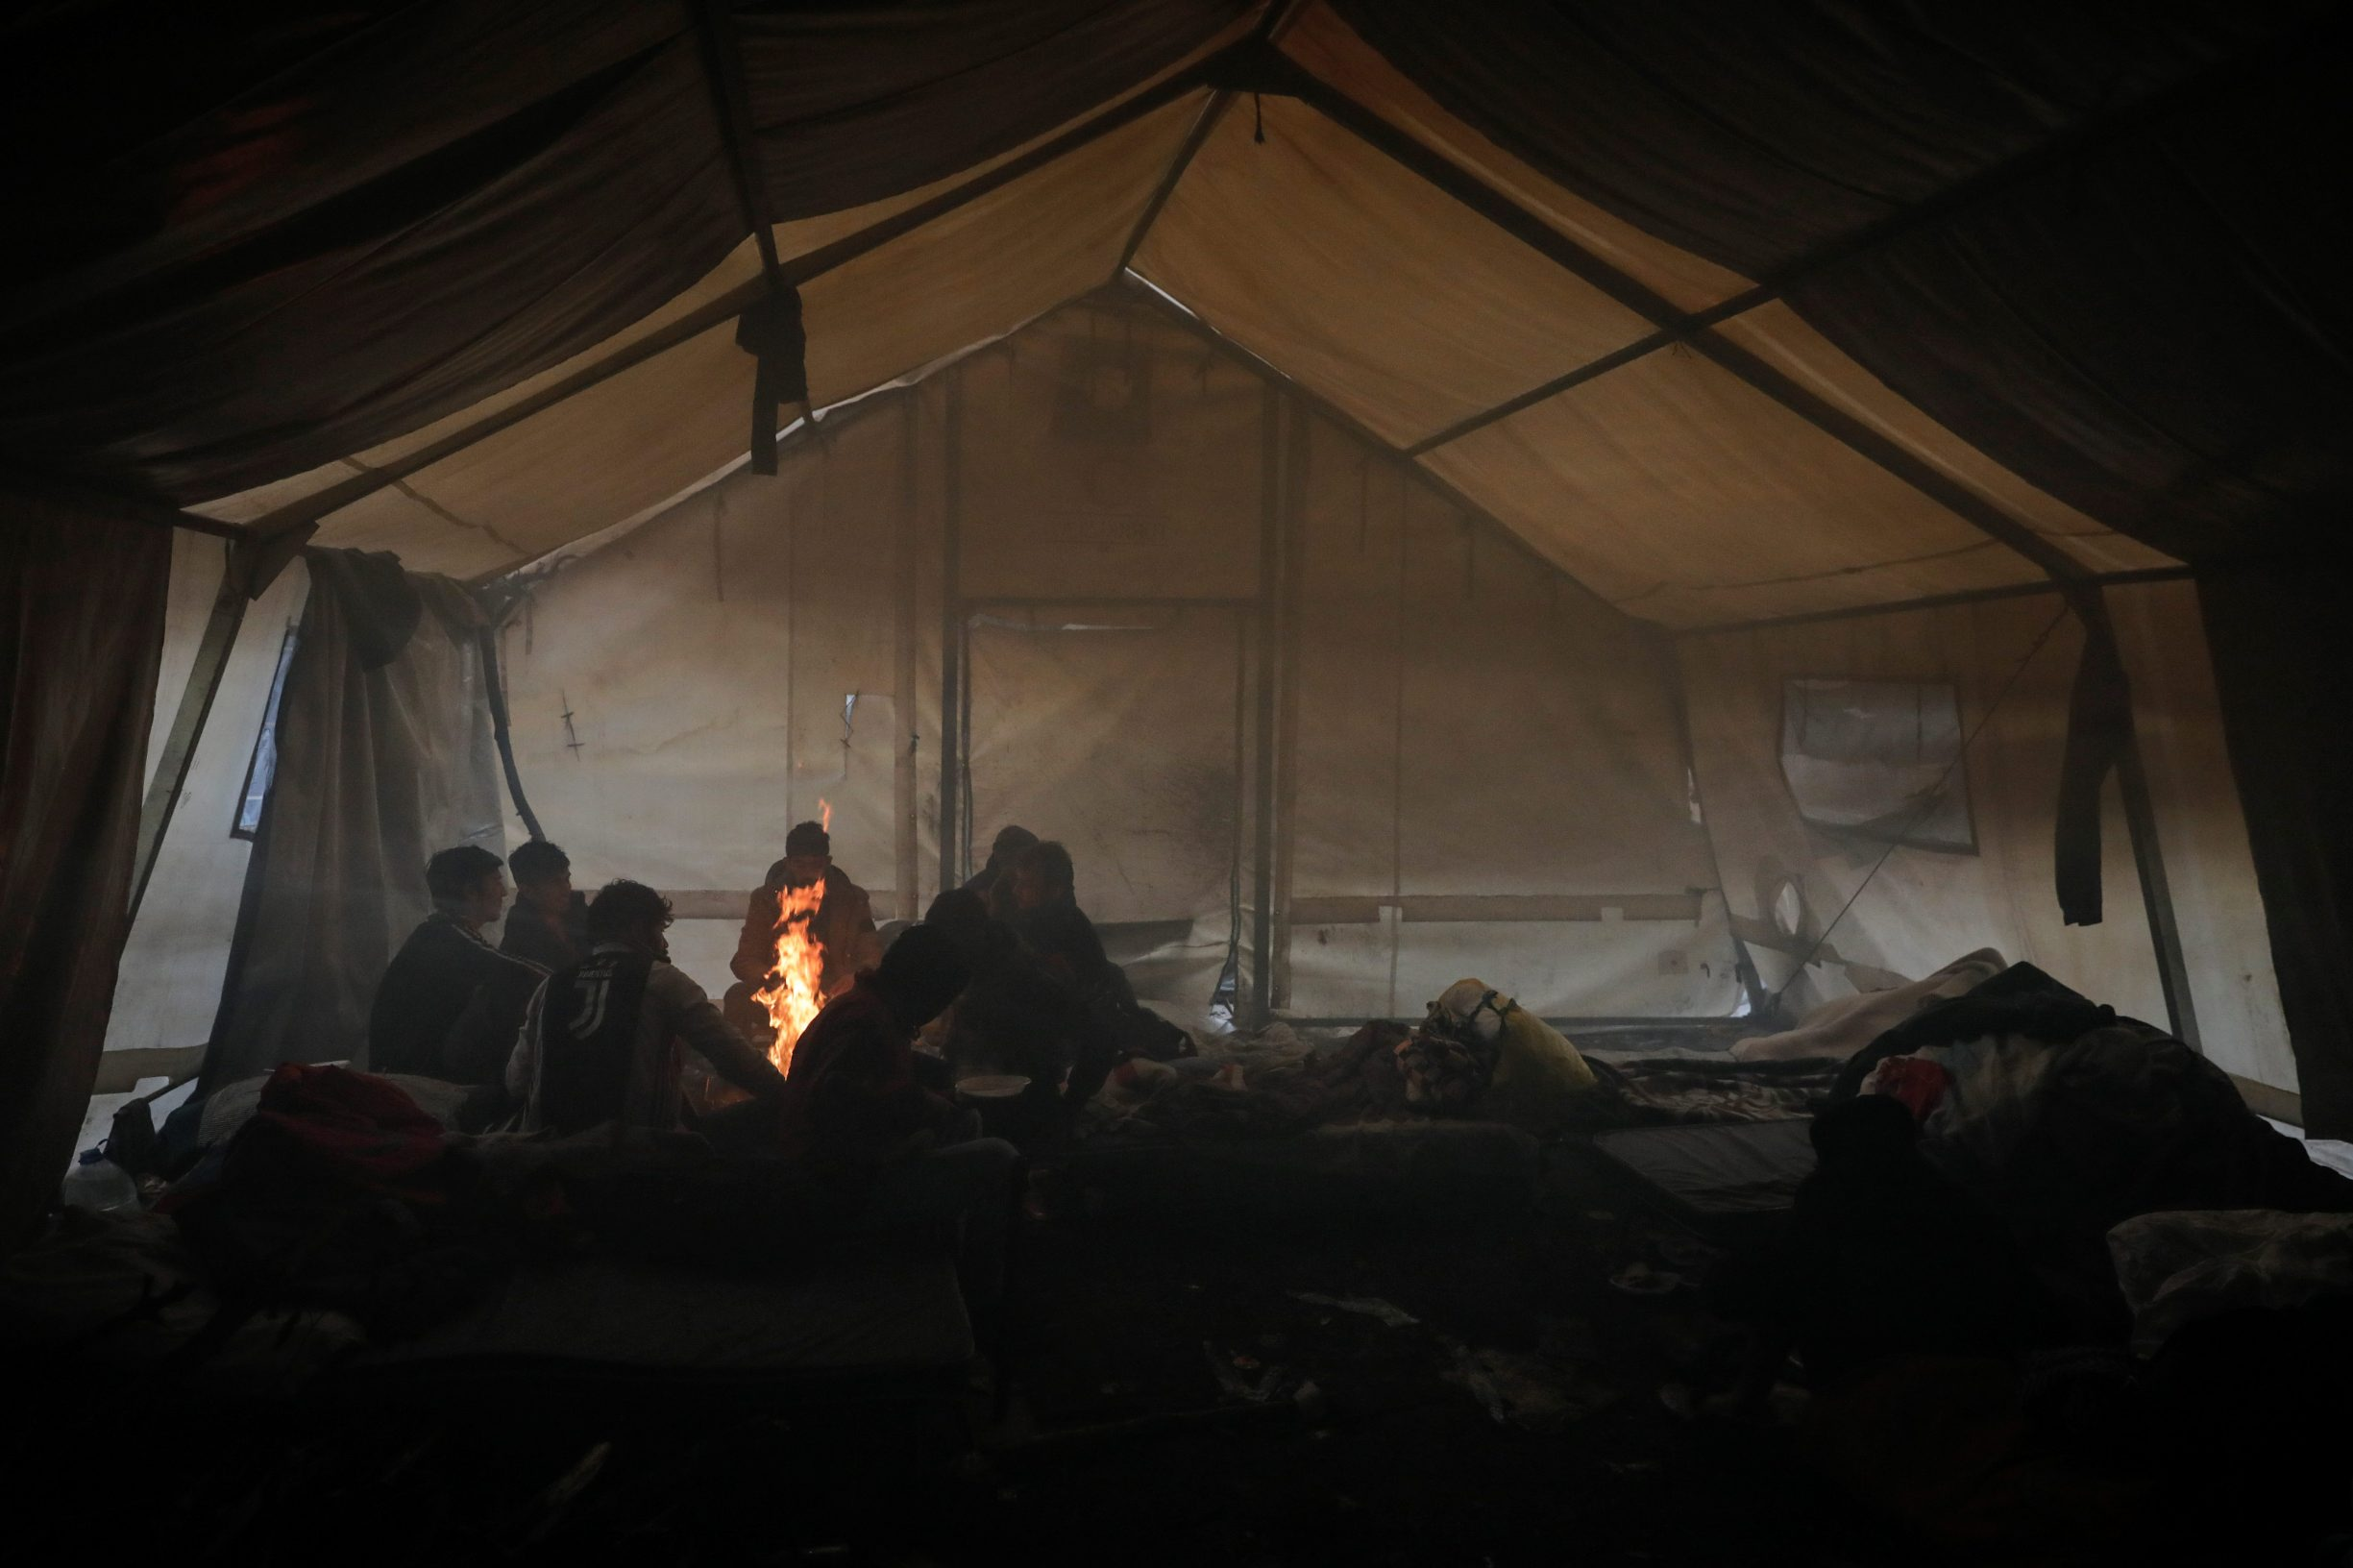 Migrants warm themselves by the fire inside their tent inside Vucjak camp near Bihac, Bosnia and Herzegovina, November 13, 2019. Picture taken November 13, 2019. REUTERS/Marko Djurica